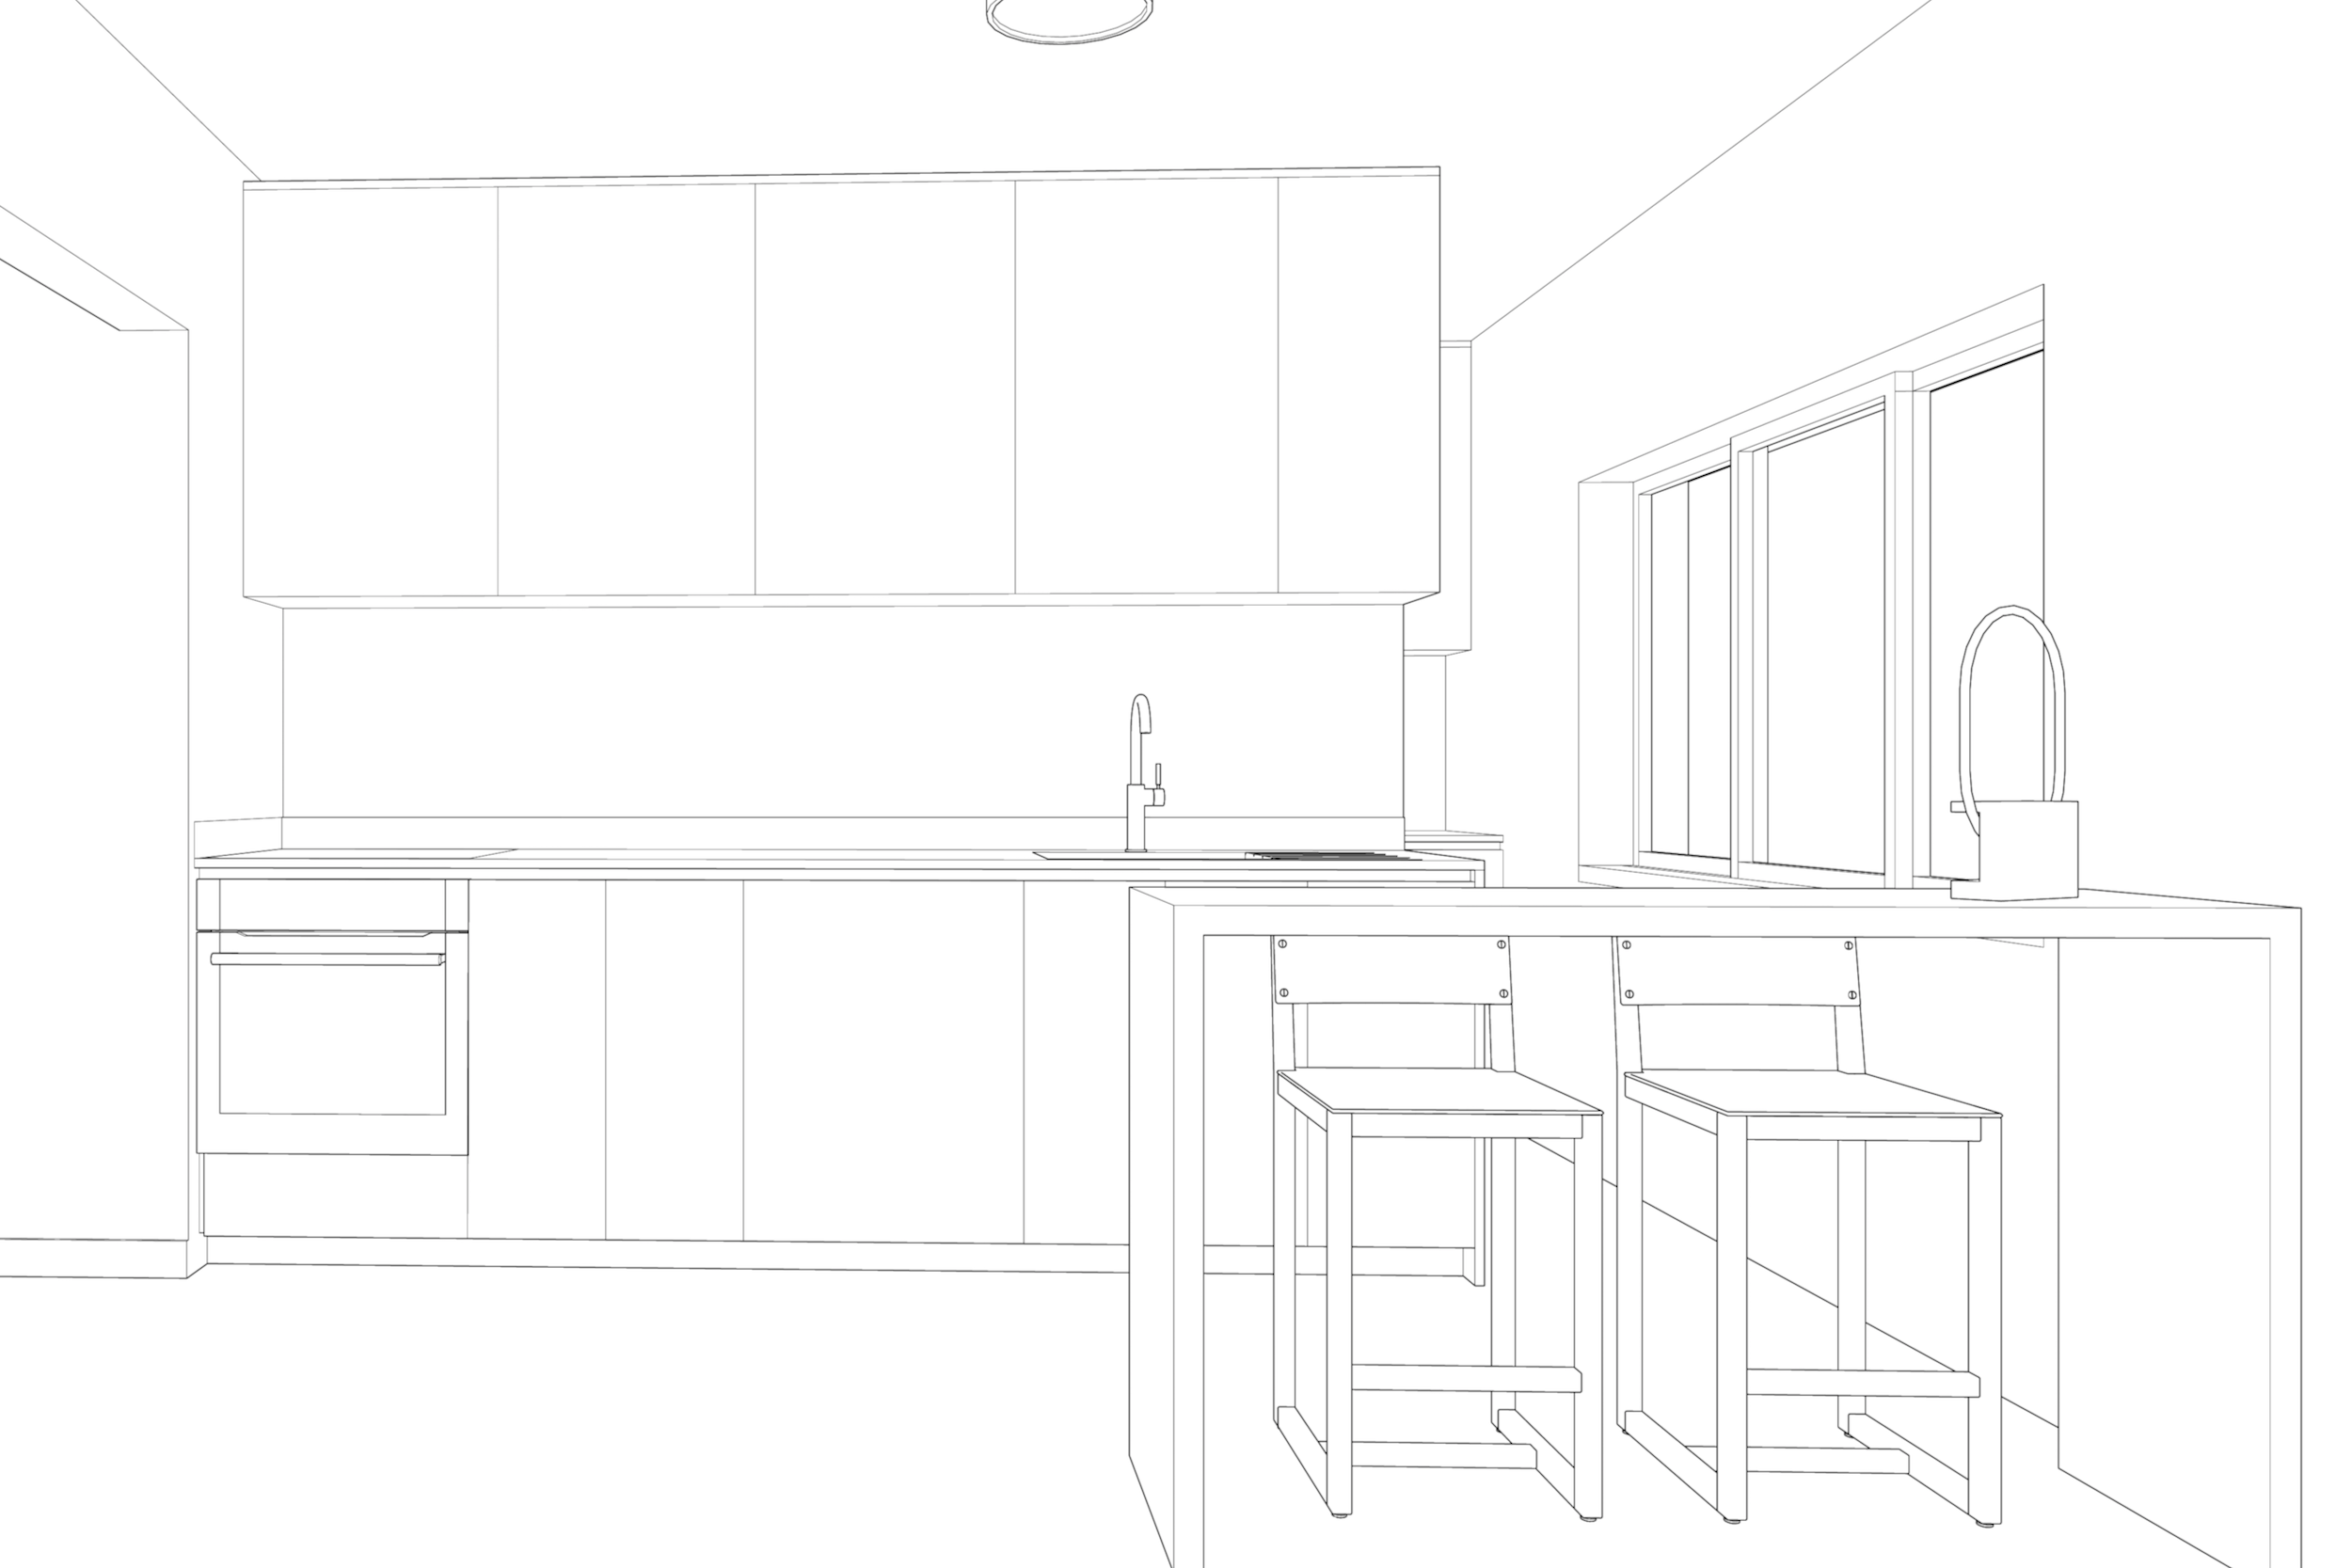 3D line drawing of kitchen and breakfast island for Lola Cwikowski Studio Telheiras Apartment project